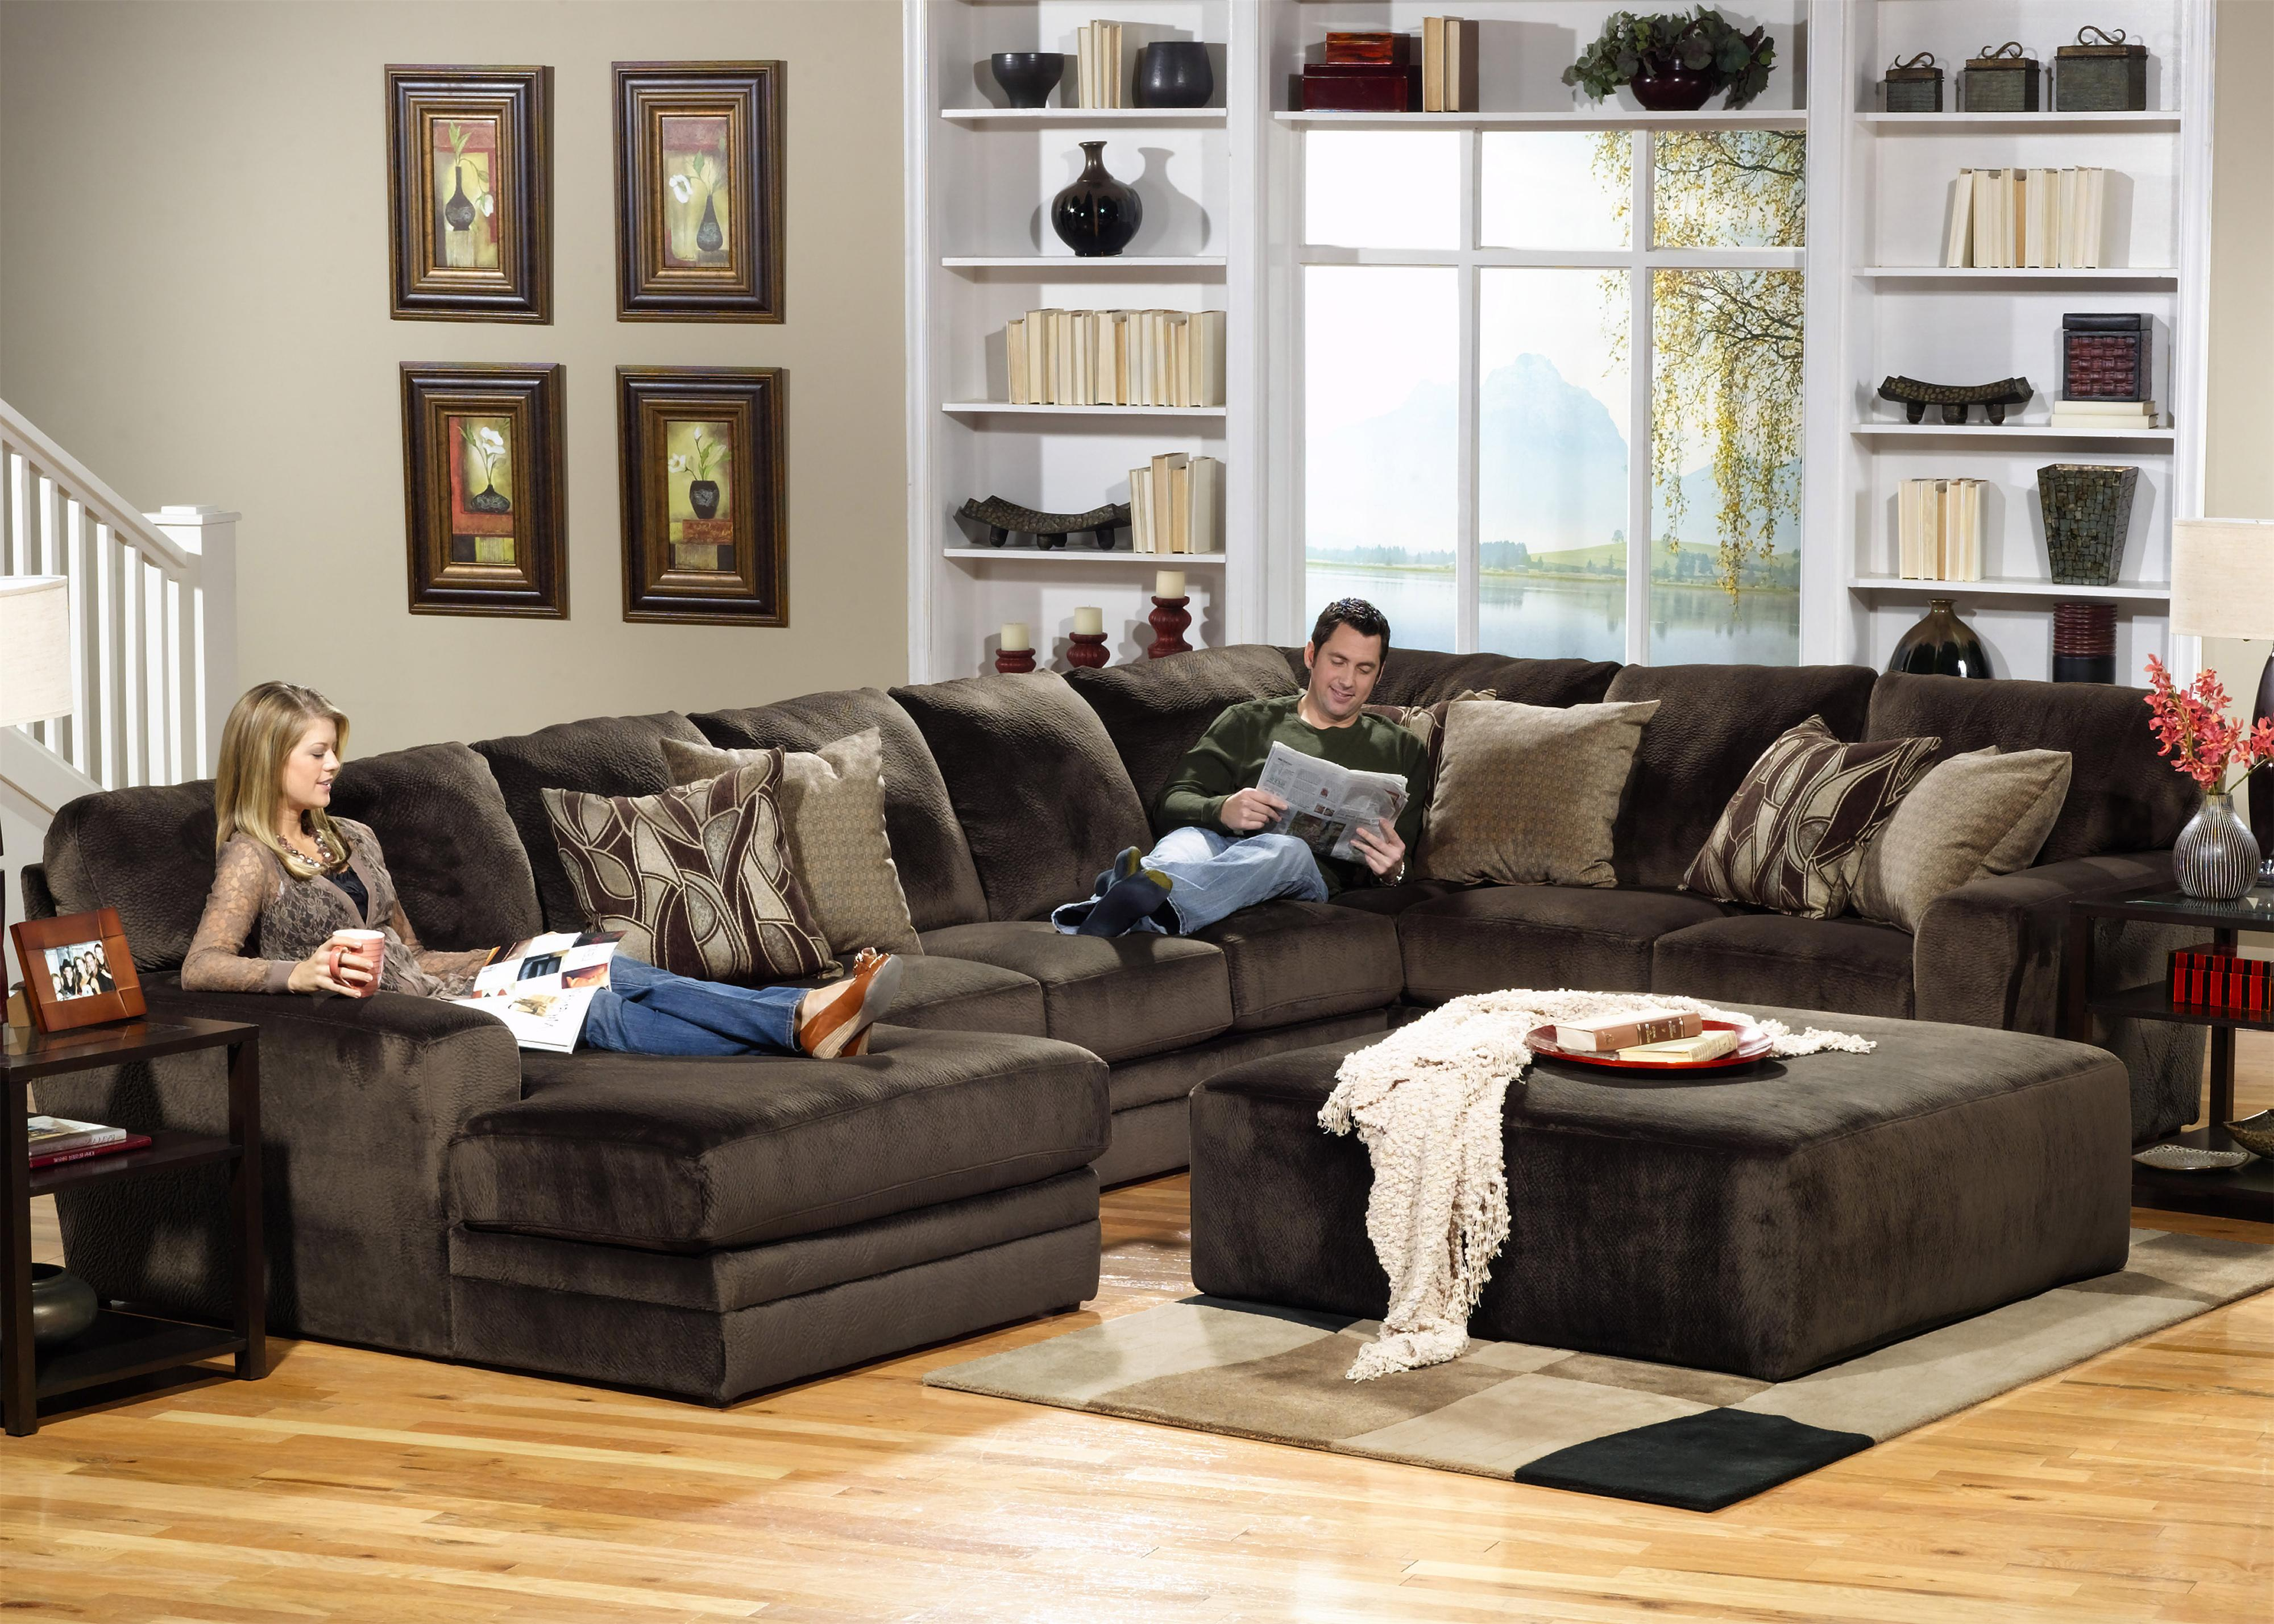 Jackson Furniture 4377 Everest 3 Piece Sectional With Rsf Section Dream Home Furniture